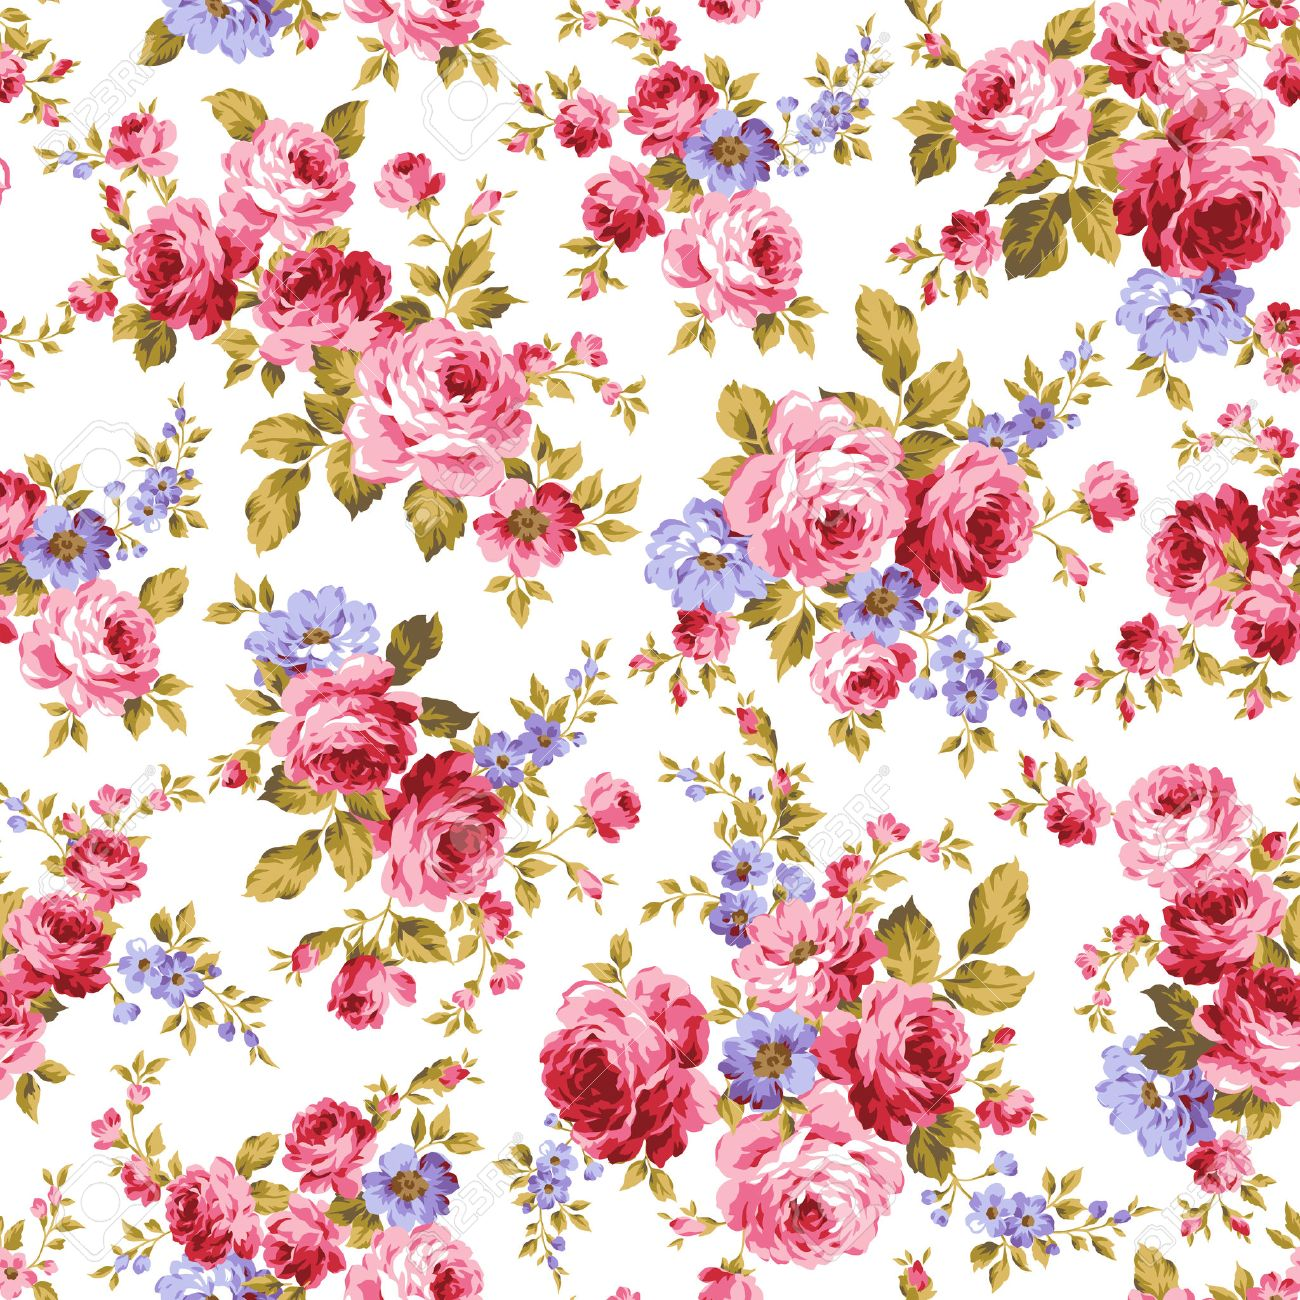 rose flower pattern, royalty free cliparts, vectors, and stock